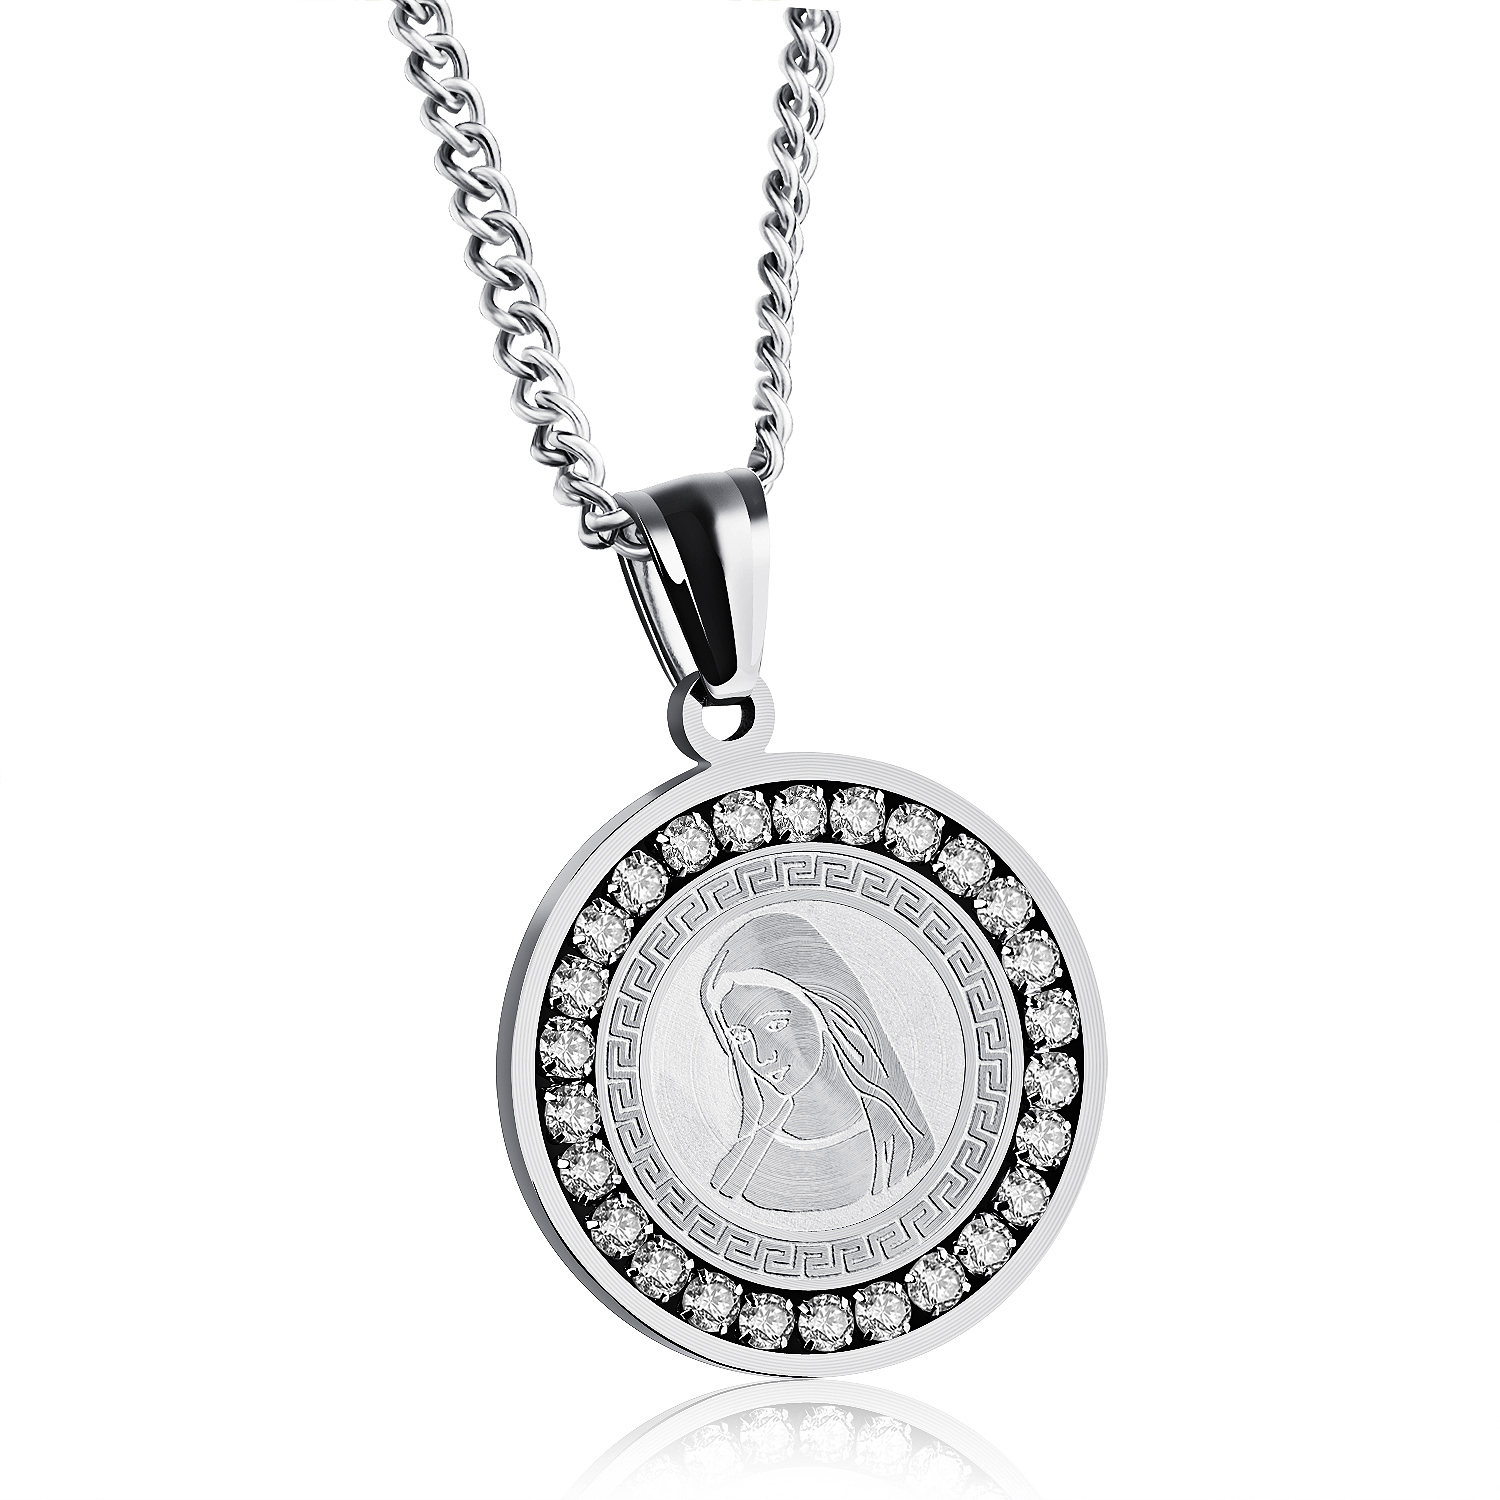 Fashion Jewelry <font><b>Male</b></font> Female Accessories The Virgin <font><b>Mary</b></font> Stainless Steel Inlaid Cubic Zirconia Man Woman Pendant Necklace CX1141